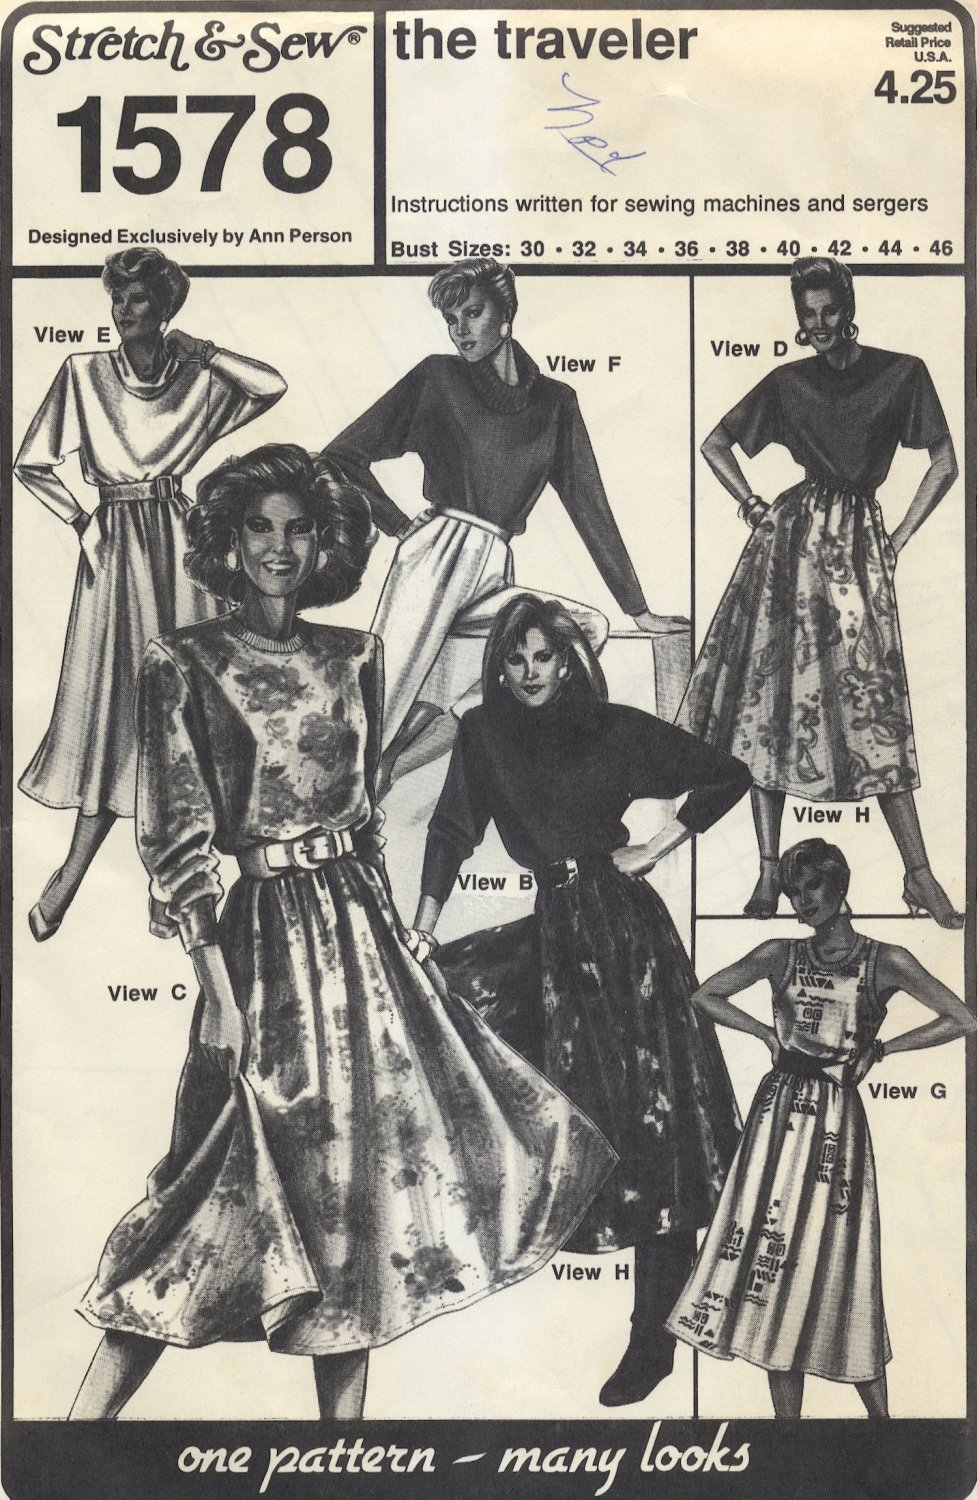 Stretch & Sew 1578 the traveler -CUT- Top, Skirt & Dress Sewing Pattern Misses' 6 8 10 12 14 16